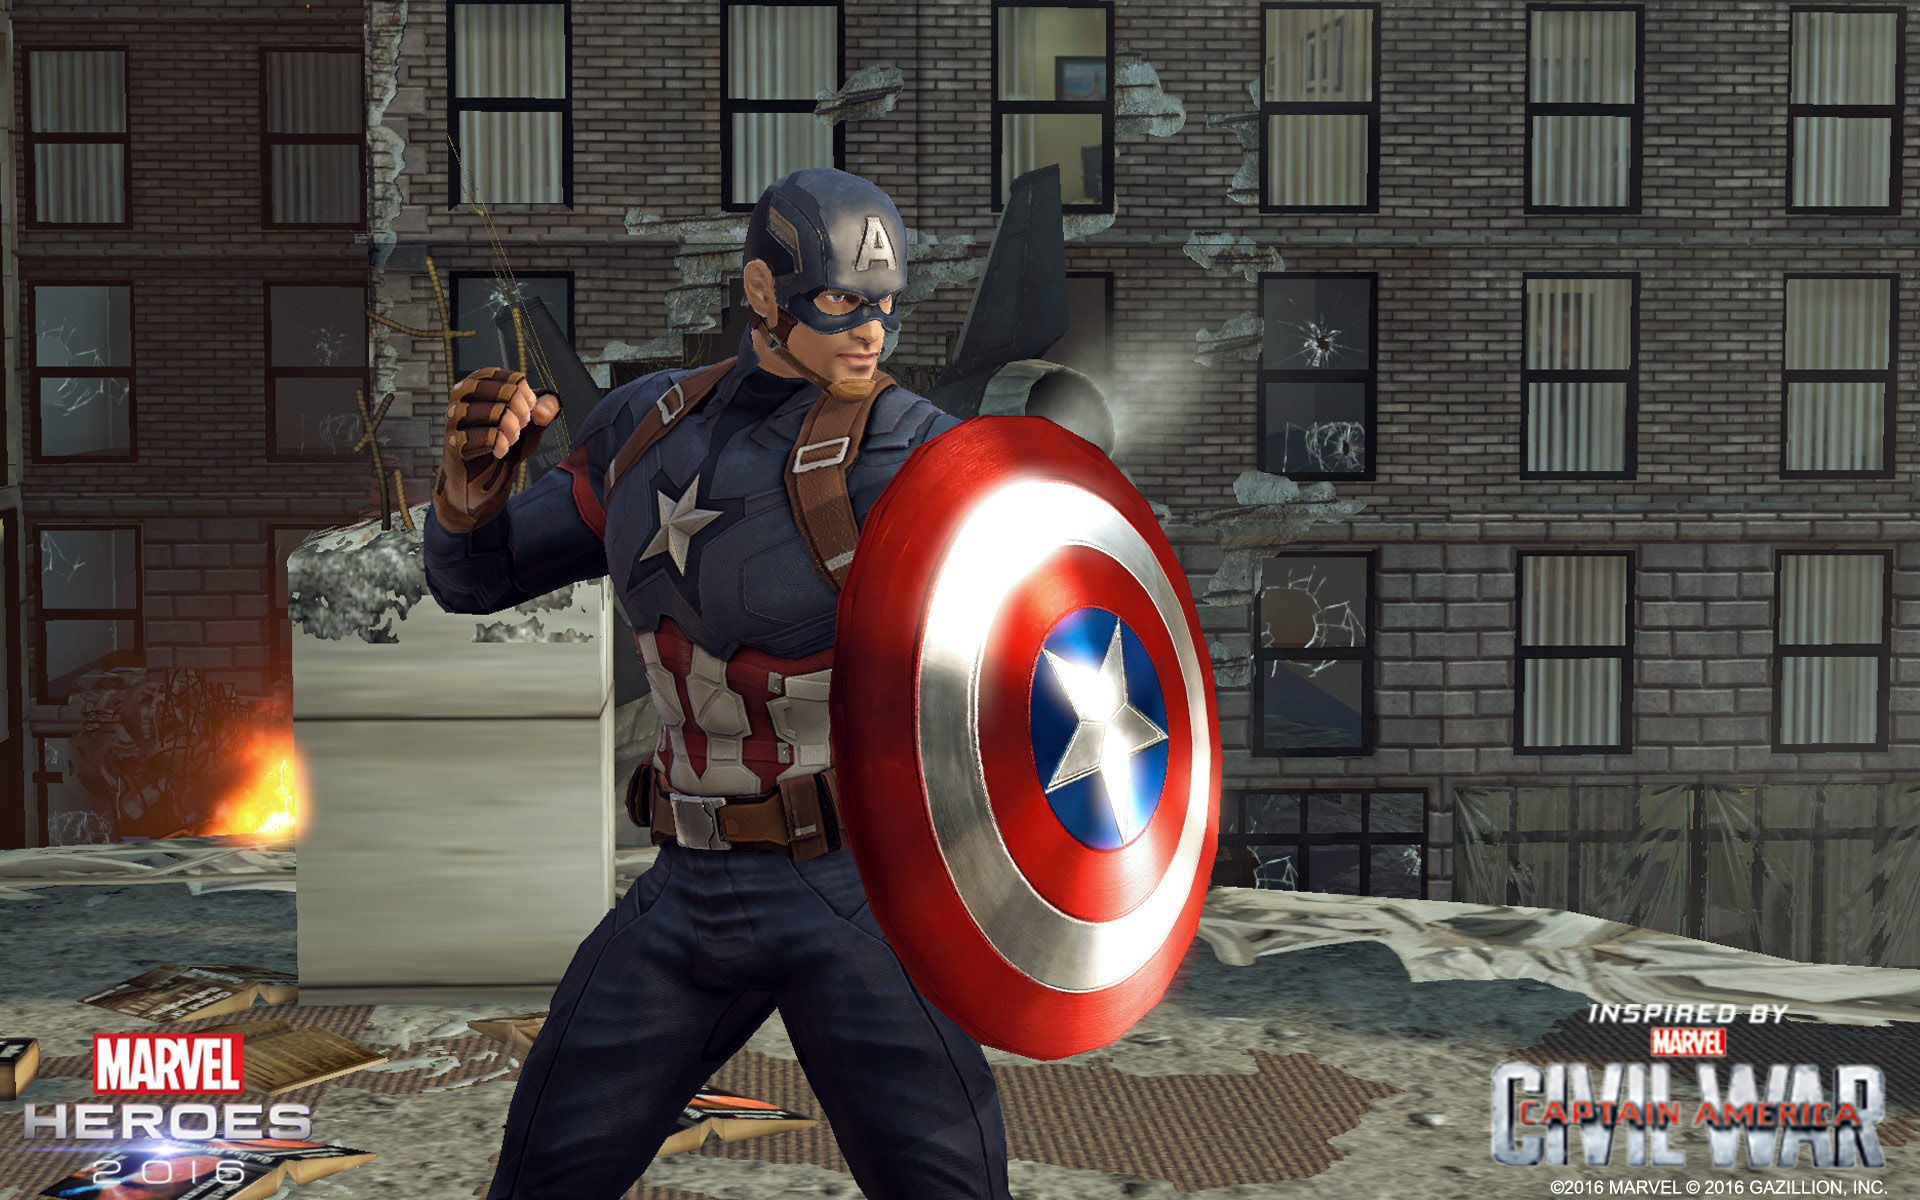 Marvel Heroes' Captain America: Civil War promo is live ...